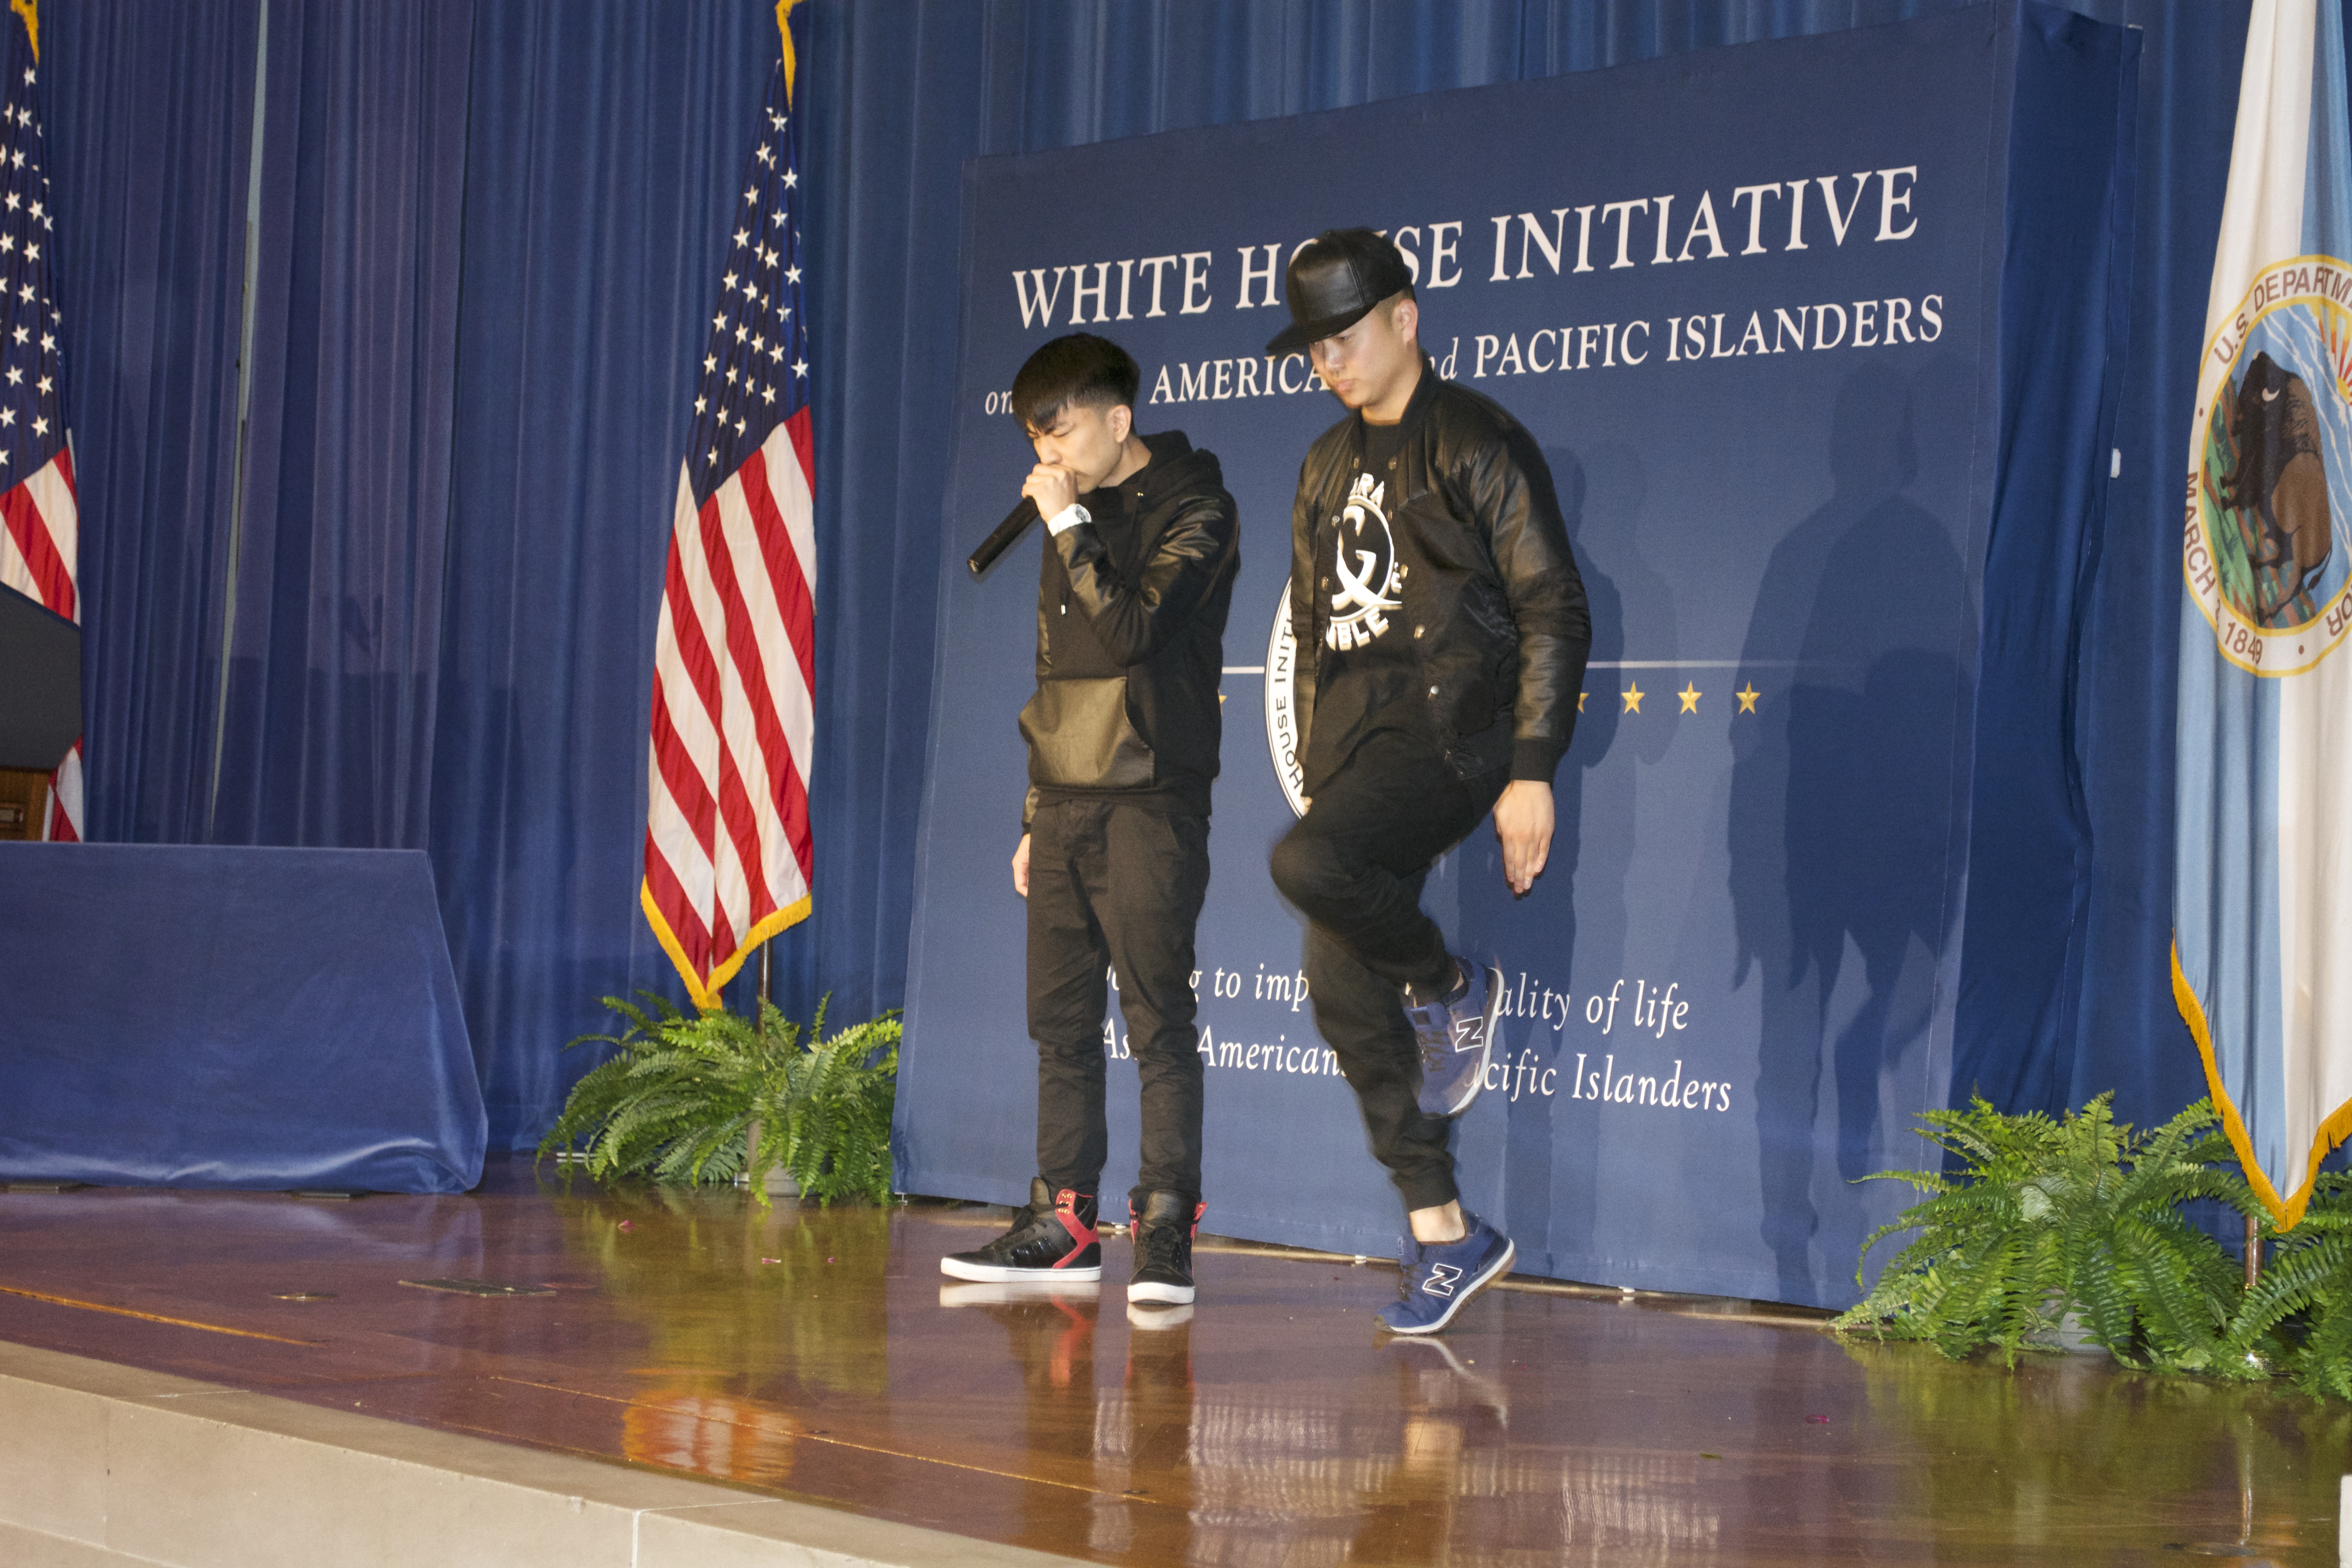 Dancer Mike Song and beatboxer KRNFX perform at AAPI Heritage Month Opening Ceremony